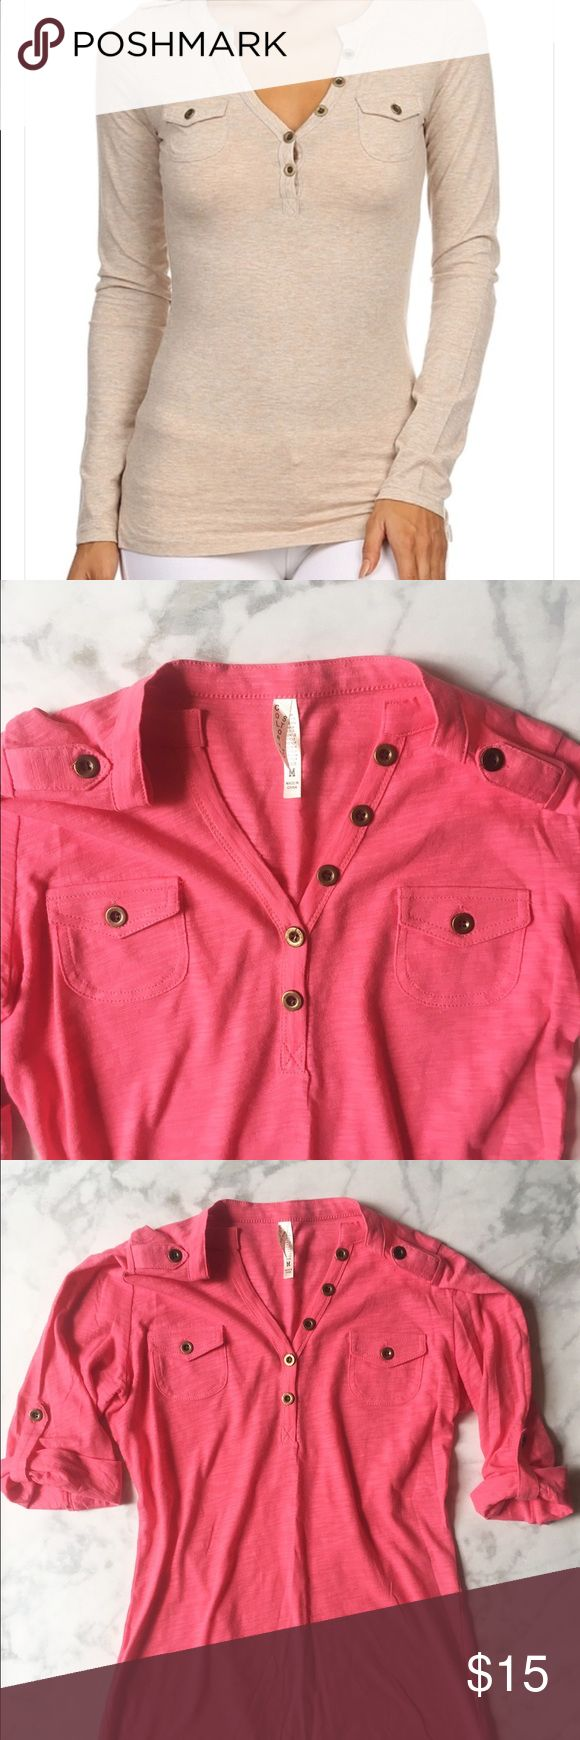 """NWOT! Stylish Button Front Henley Top NWOT Pink Button Front Henley Top. Size M.     *Button front henley with opulets *95% Cotton, 5% Spandex *Model Info: Height: 5'7"""" 